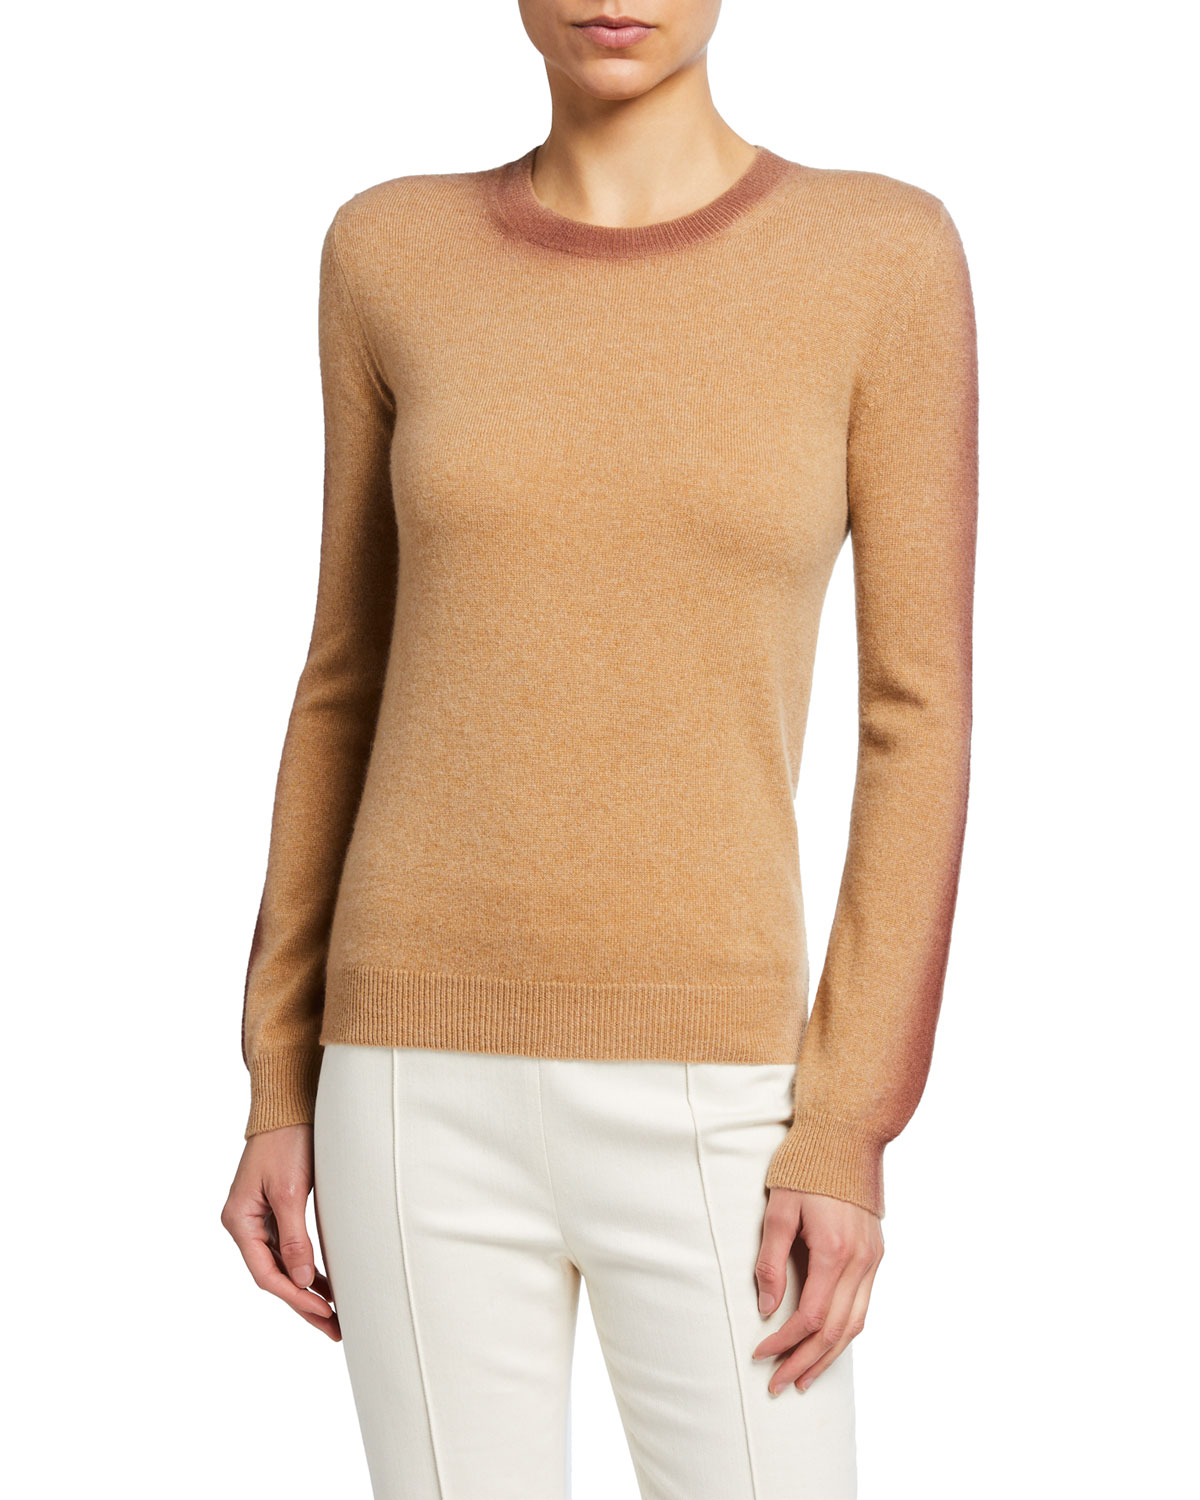 Spray Painted Cashmere Sweater